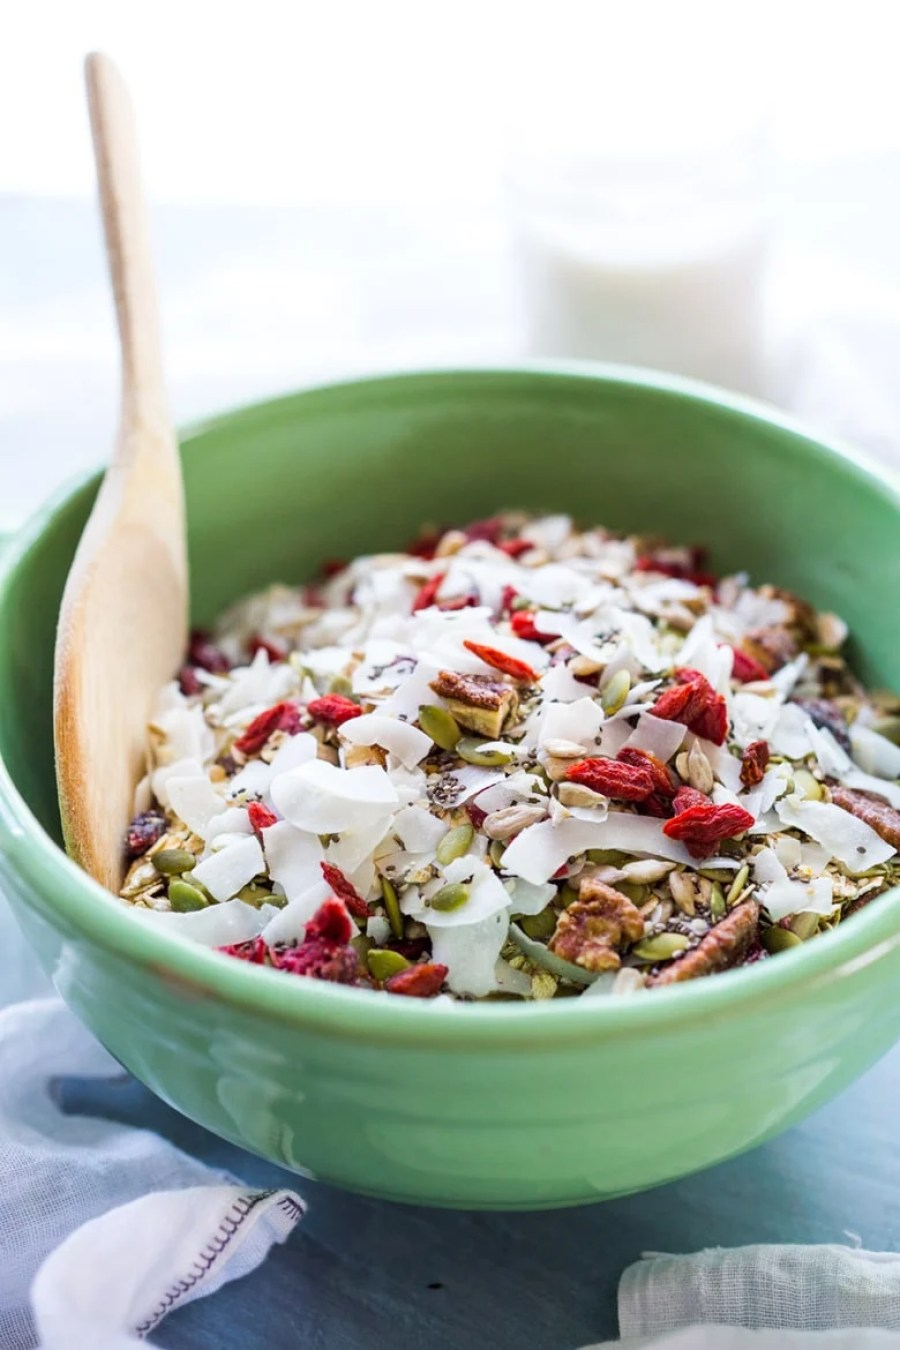 Morning Glory Muesli- a healthier, sugar-free, low-fat alternative to granola, that can be made ahead with ingredients you probably already have, and best of all, no cooking required! | www.feastingathome.com